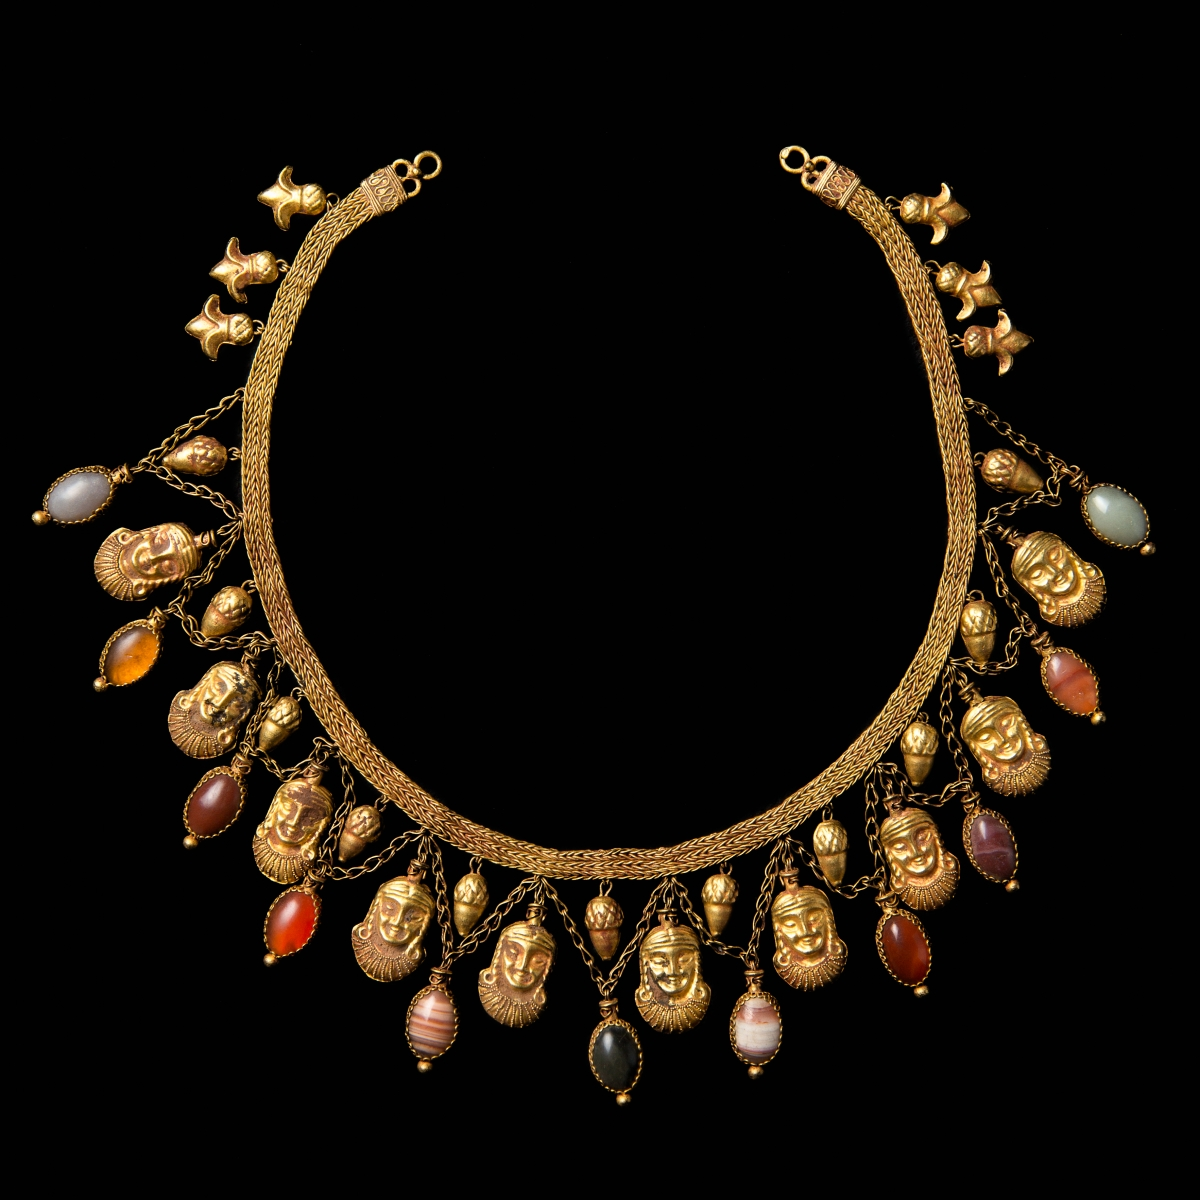 Photo of revival-etruscan-style-archaeological-necklace-italy-galerie-golconda